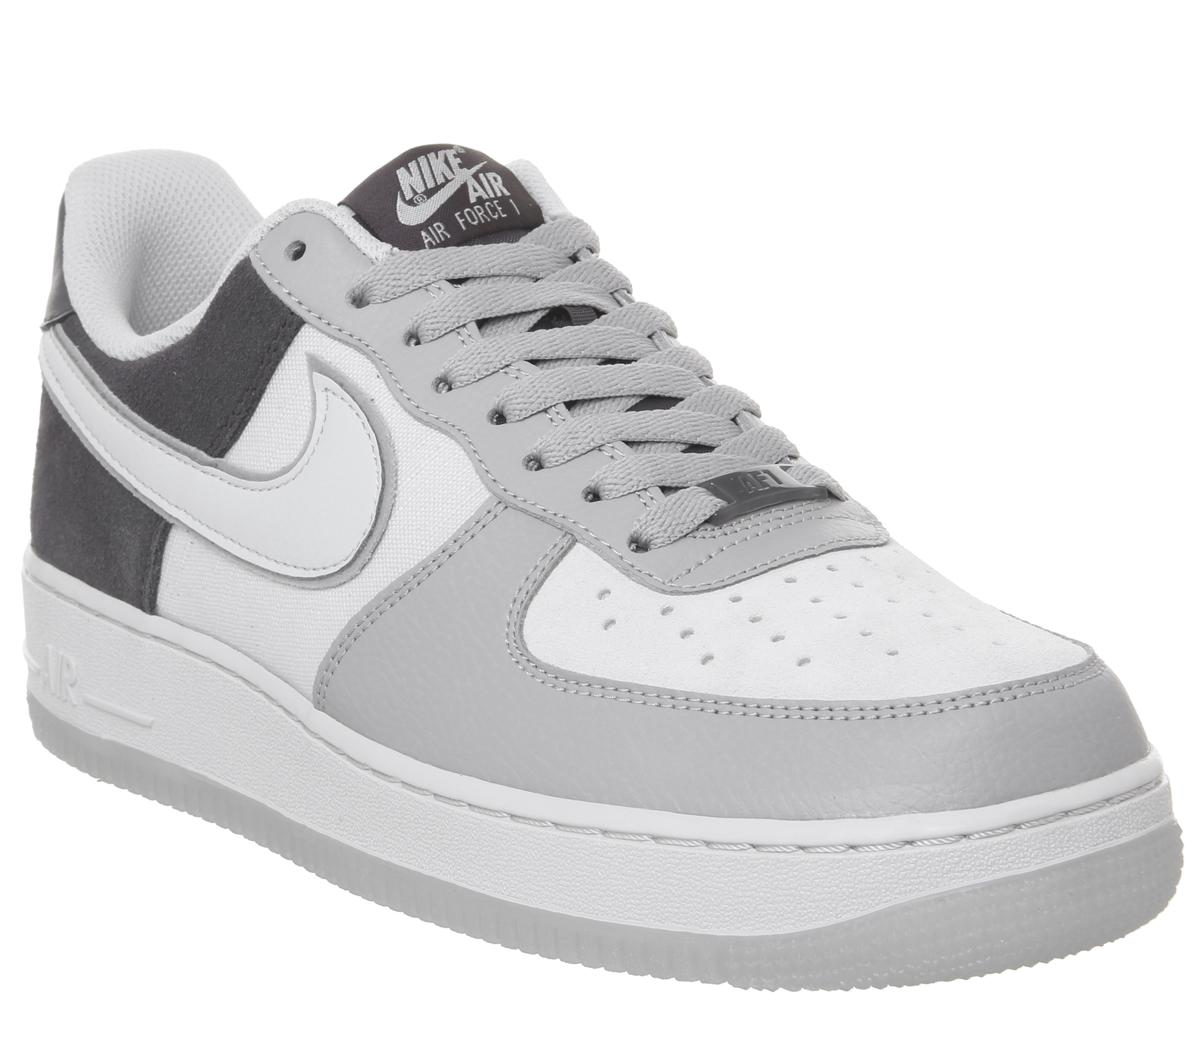 Nike Air Force 1 Lv8 Trainers